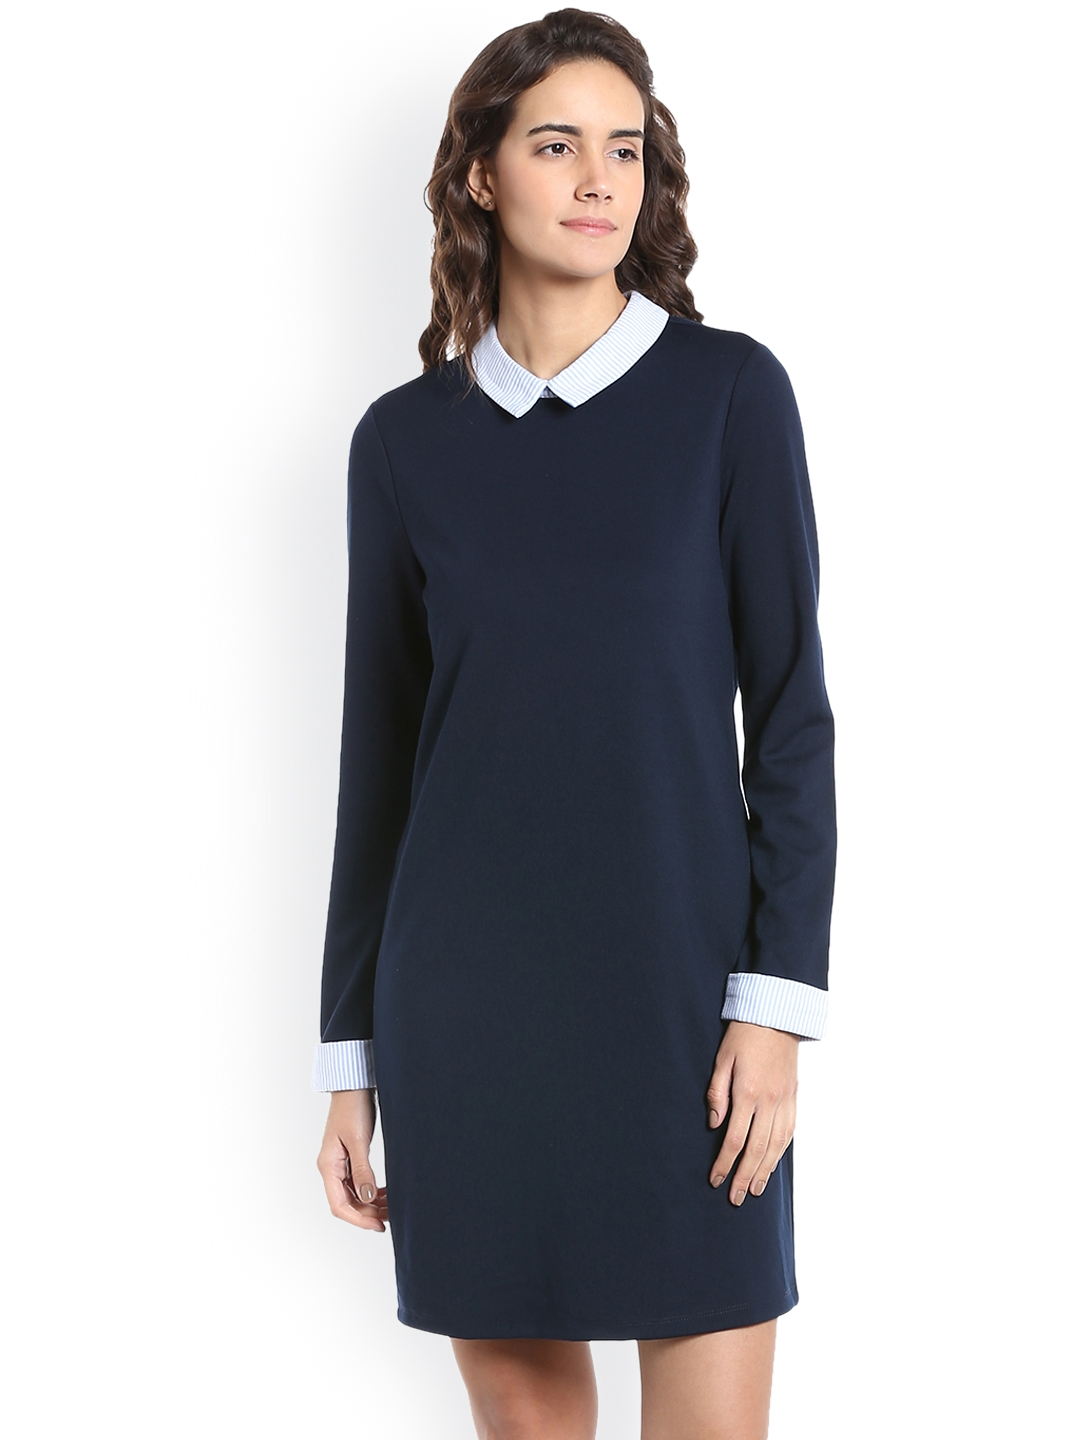 faaeec287af Buy Vero Moda Women Navy Blue Solid A Line Dress - Dresses for Women ...